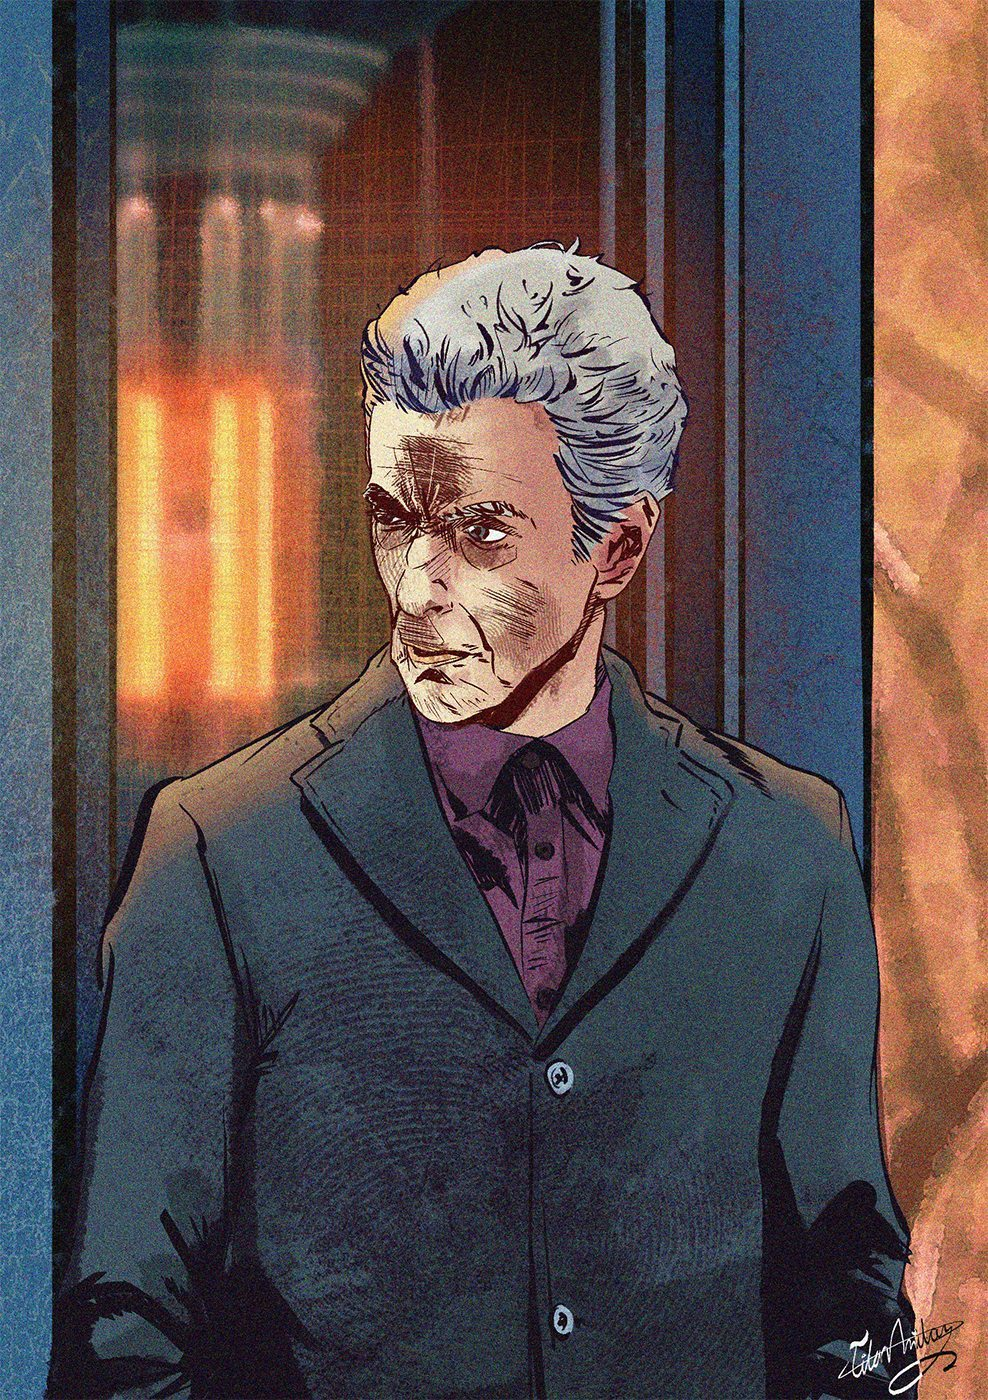 Comic Illustration of Capaldi by Omniopticon